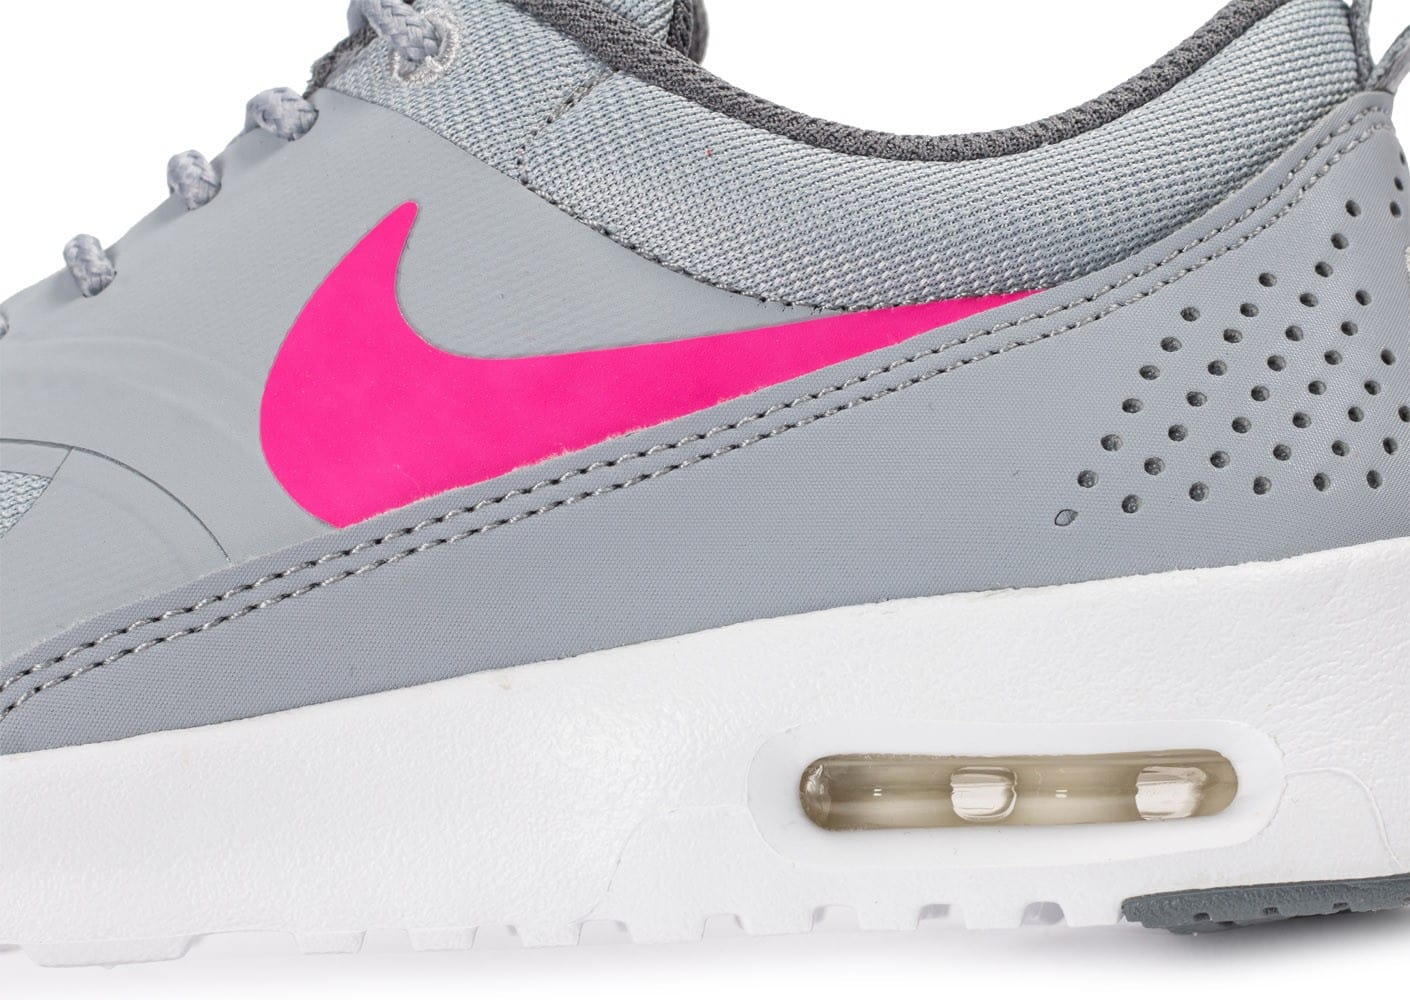 new product 8d0f0 ab207 ... Chaussures Nike Air Max Thea Junior grise et rose vue dessus